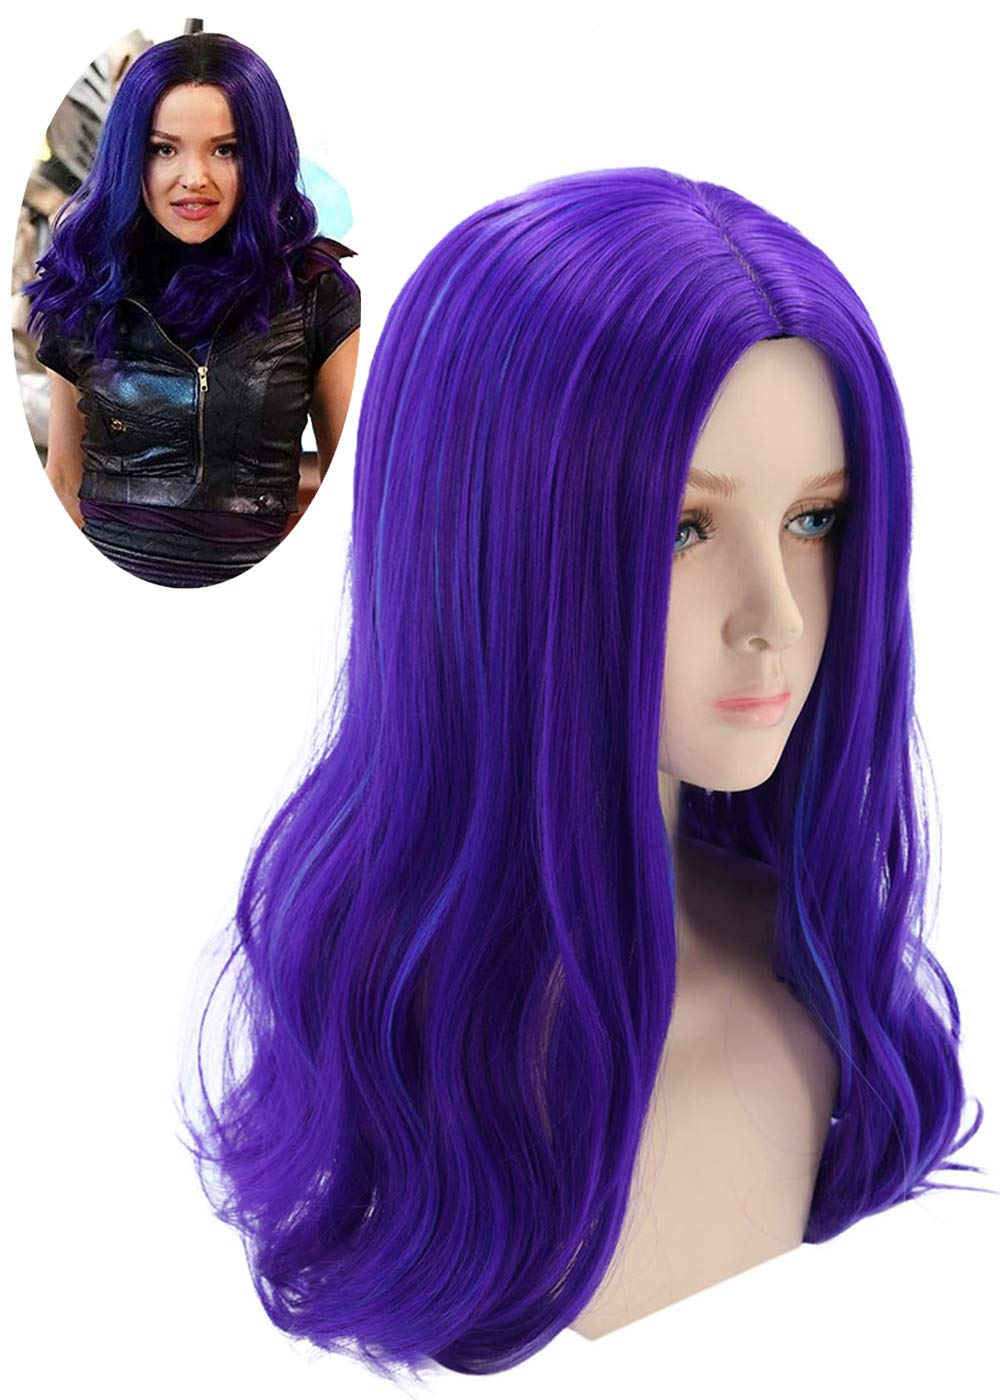 Mersi Mal Wig for Kids Mal Costume Cosplay Wig Long Wavy Purple Wig for Halloween Party S057 by Mersi